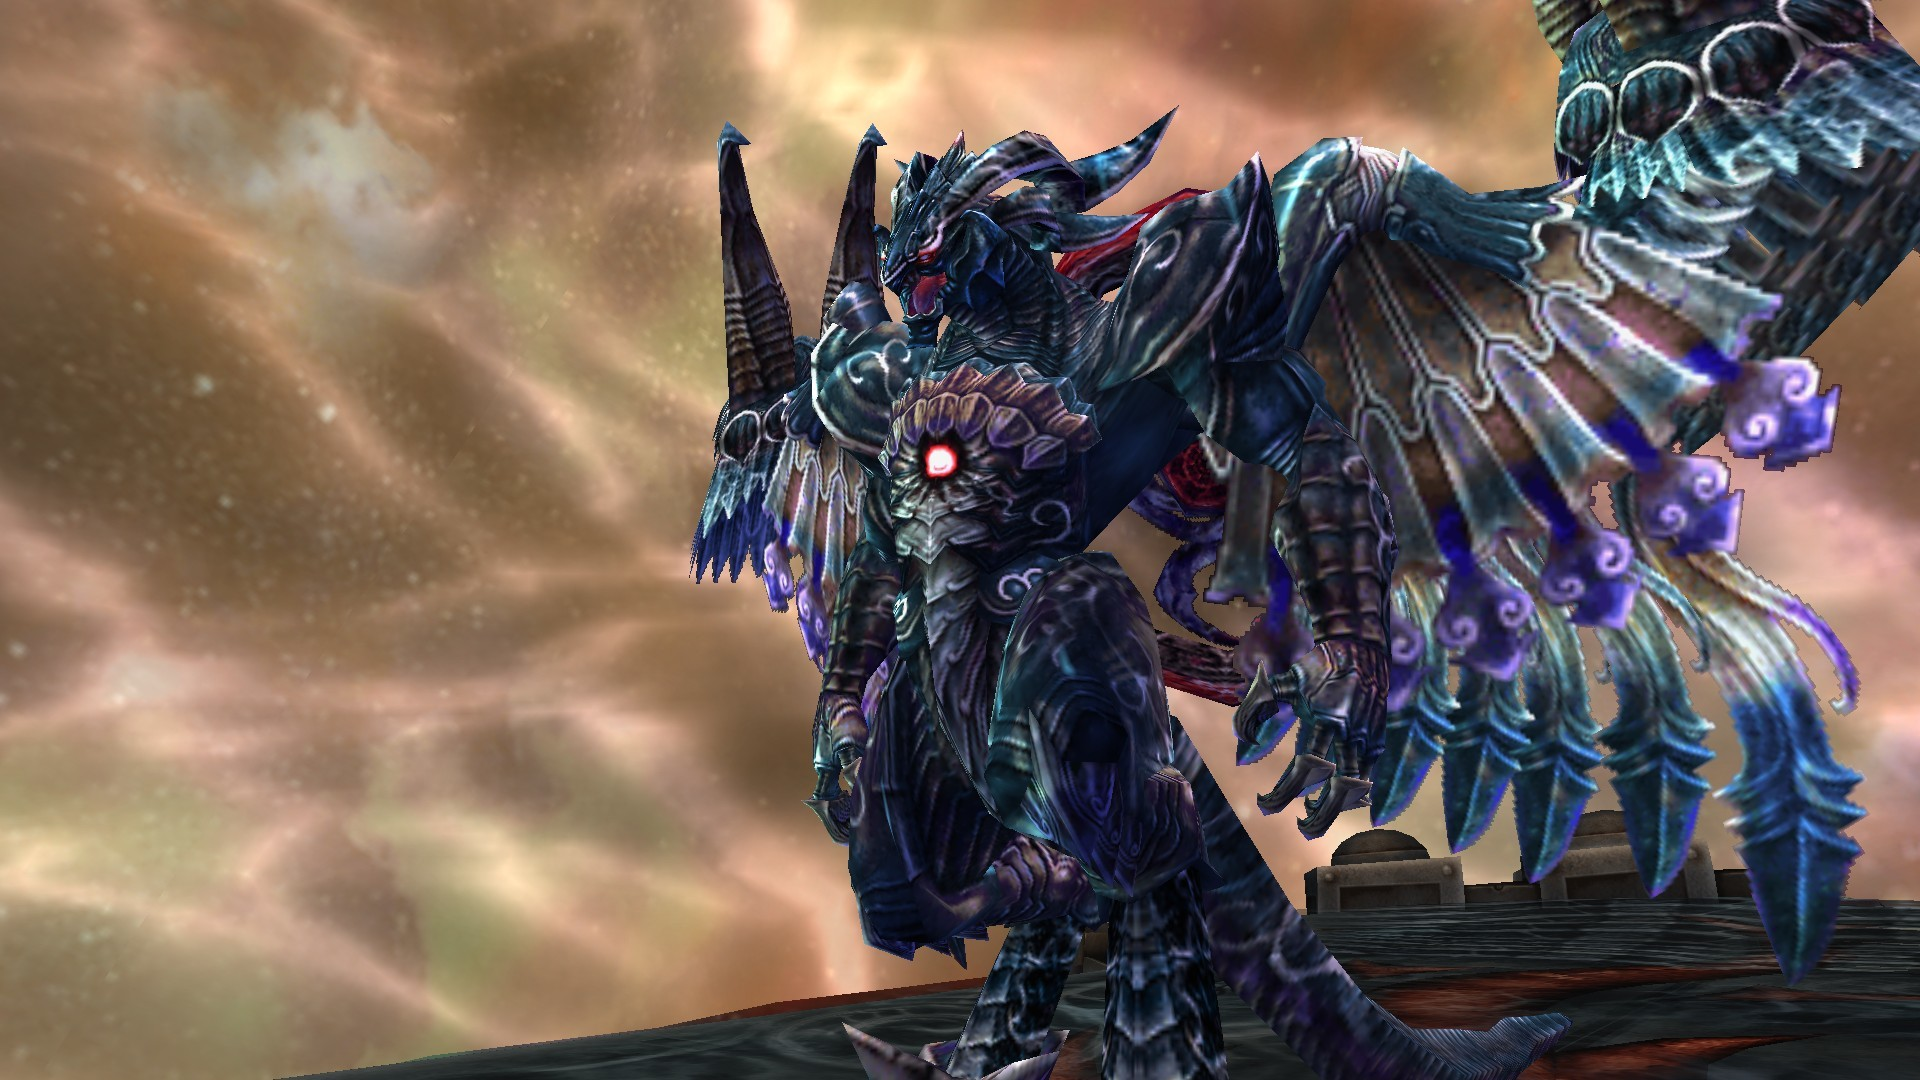 17 Best images about Final Fantasy X on Pinterest